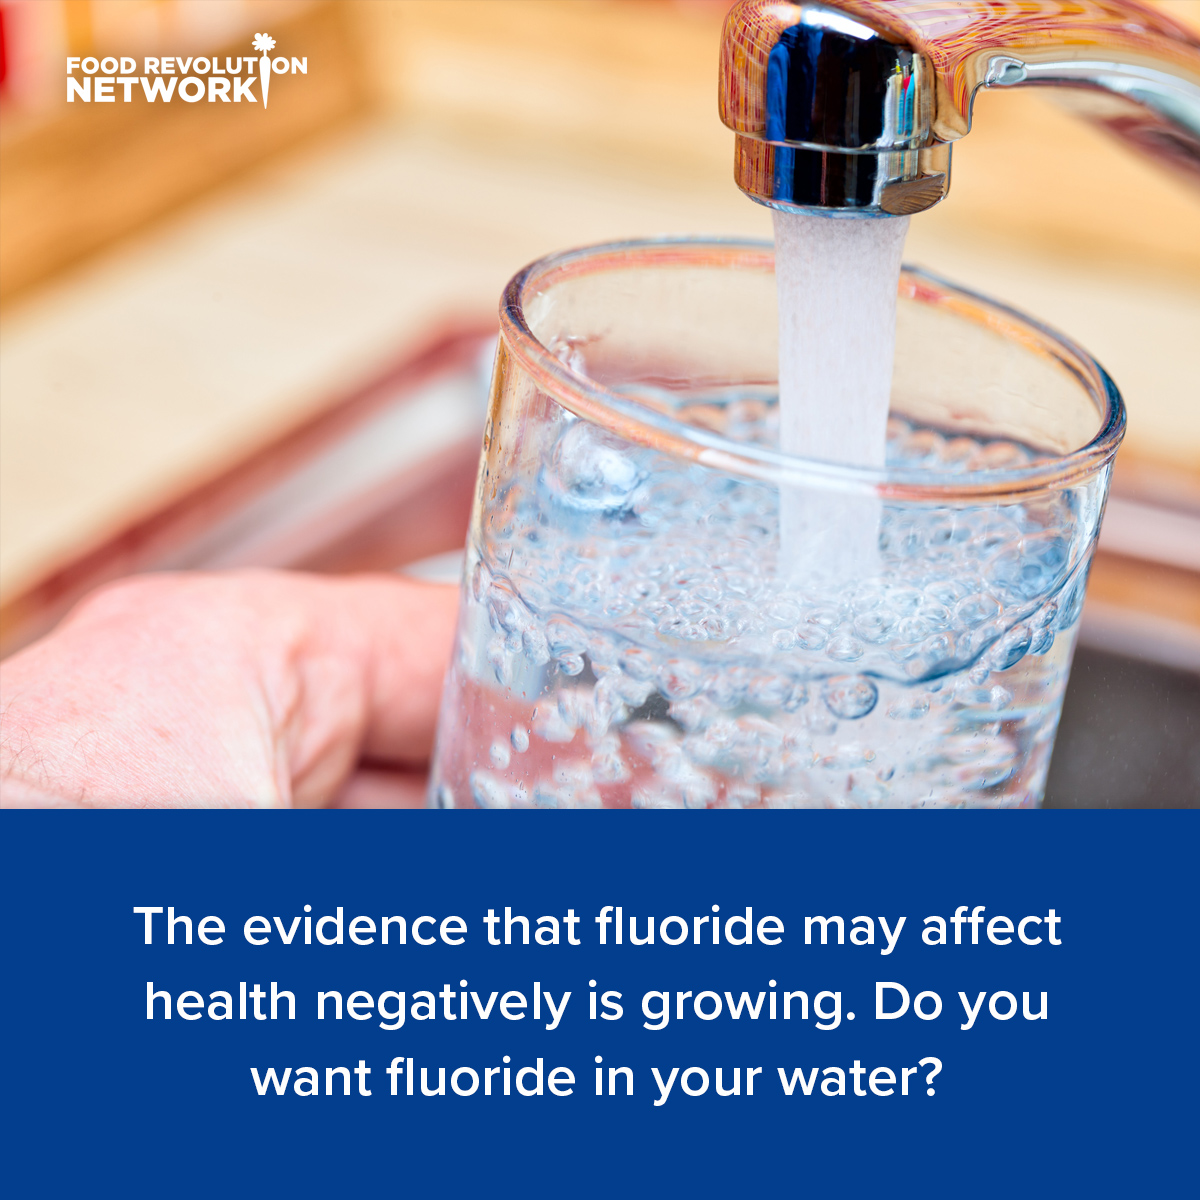 The evidence that fluoride may affect health negatively is growing. Do you want fluoride in your water?